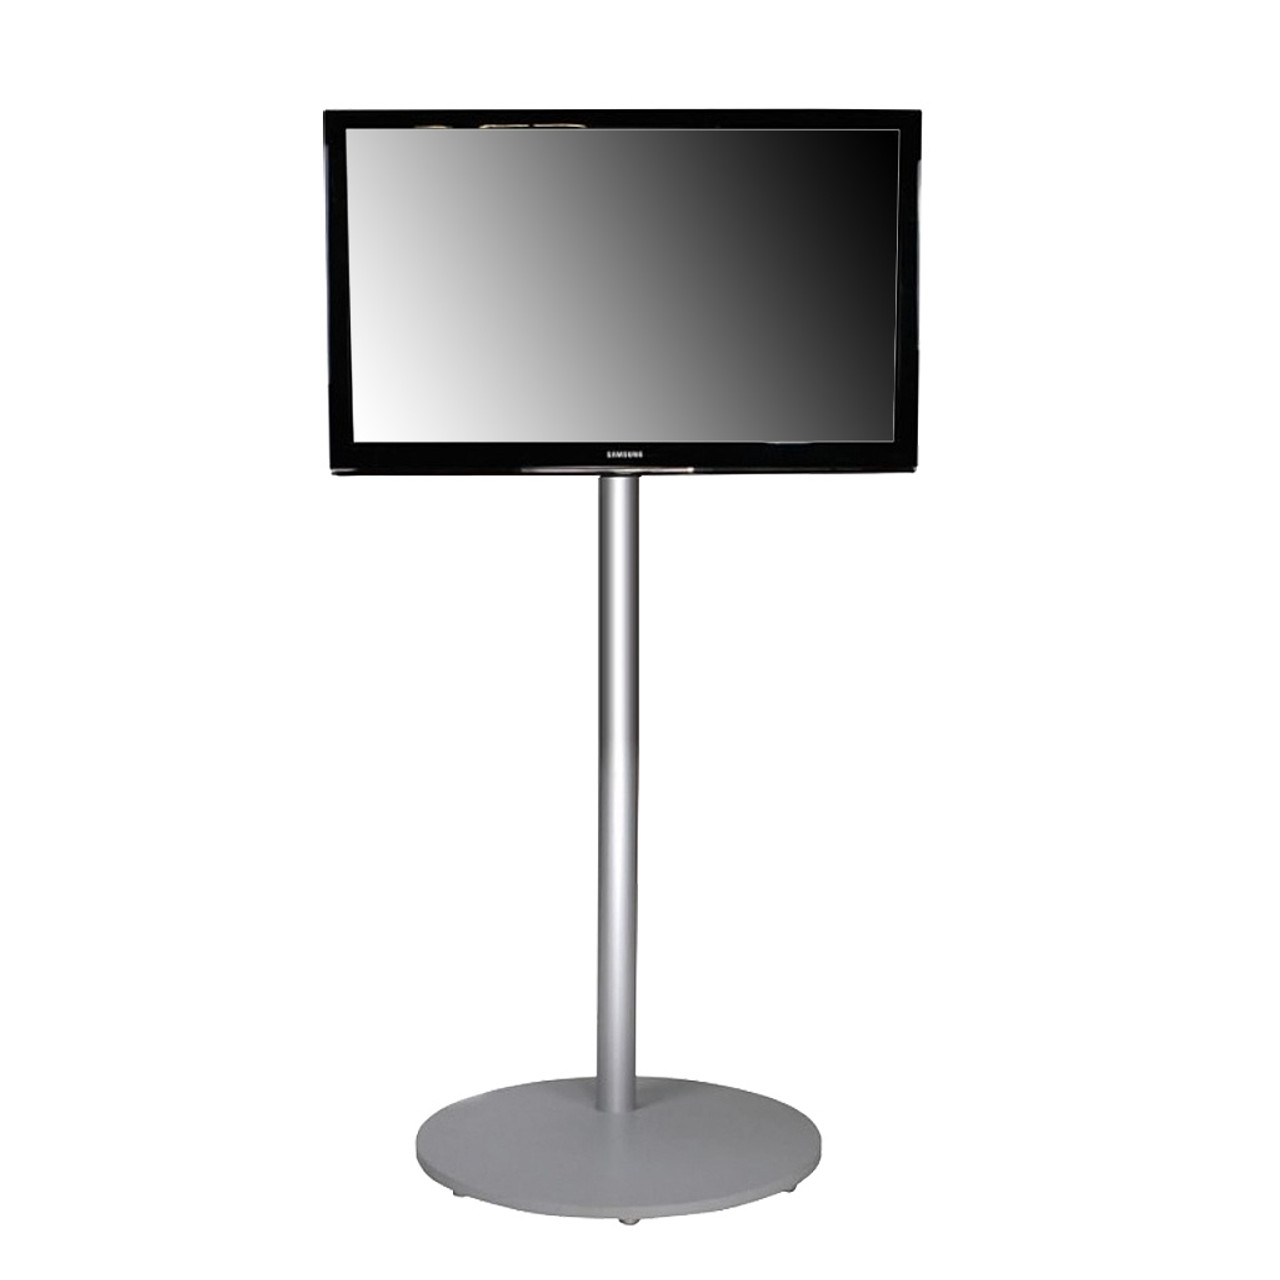 Portable 28 70 Monitor Stand 70 H Silver Best Tradeshow Display